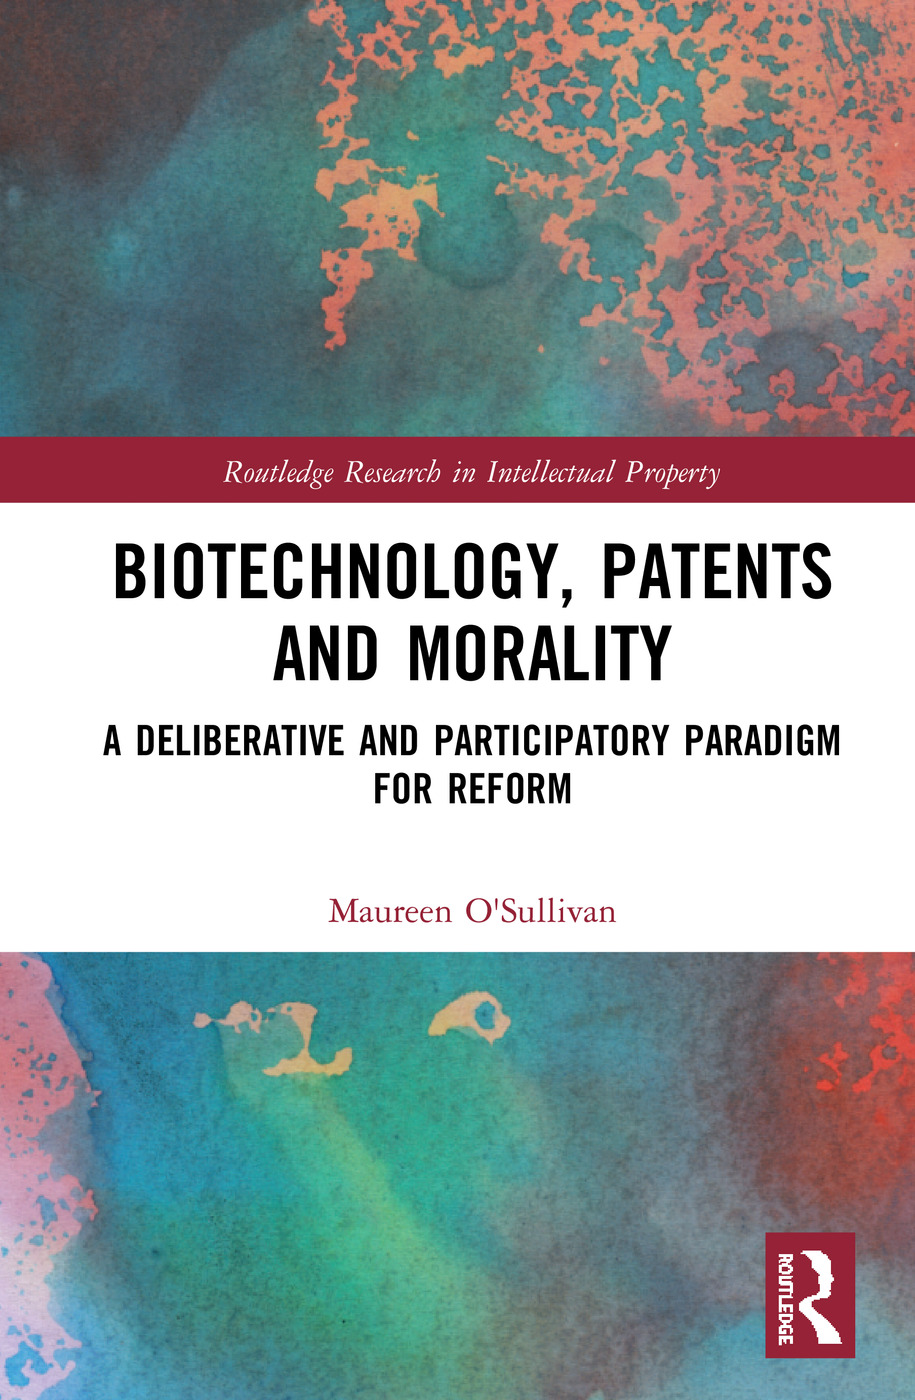 Biotechnology, Patents and Morality: A Deliberative and Participatory Paradigm for Reform book cover